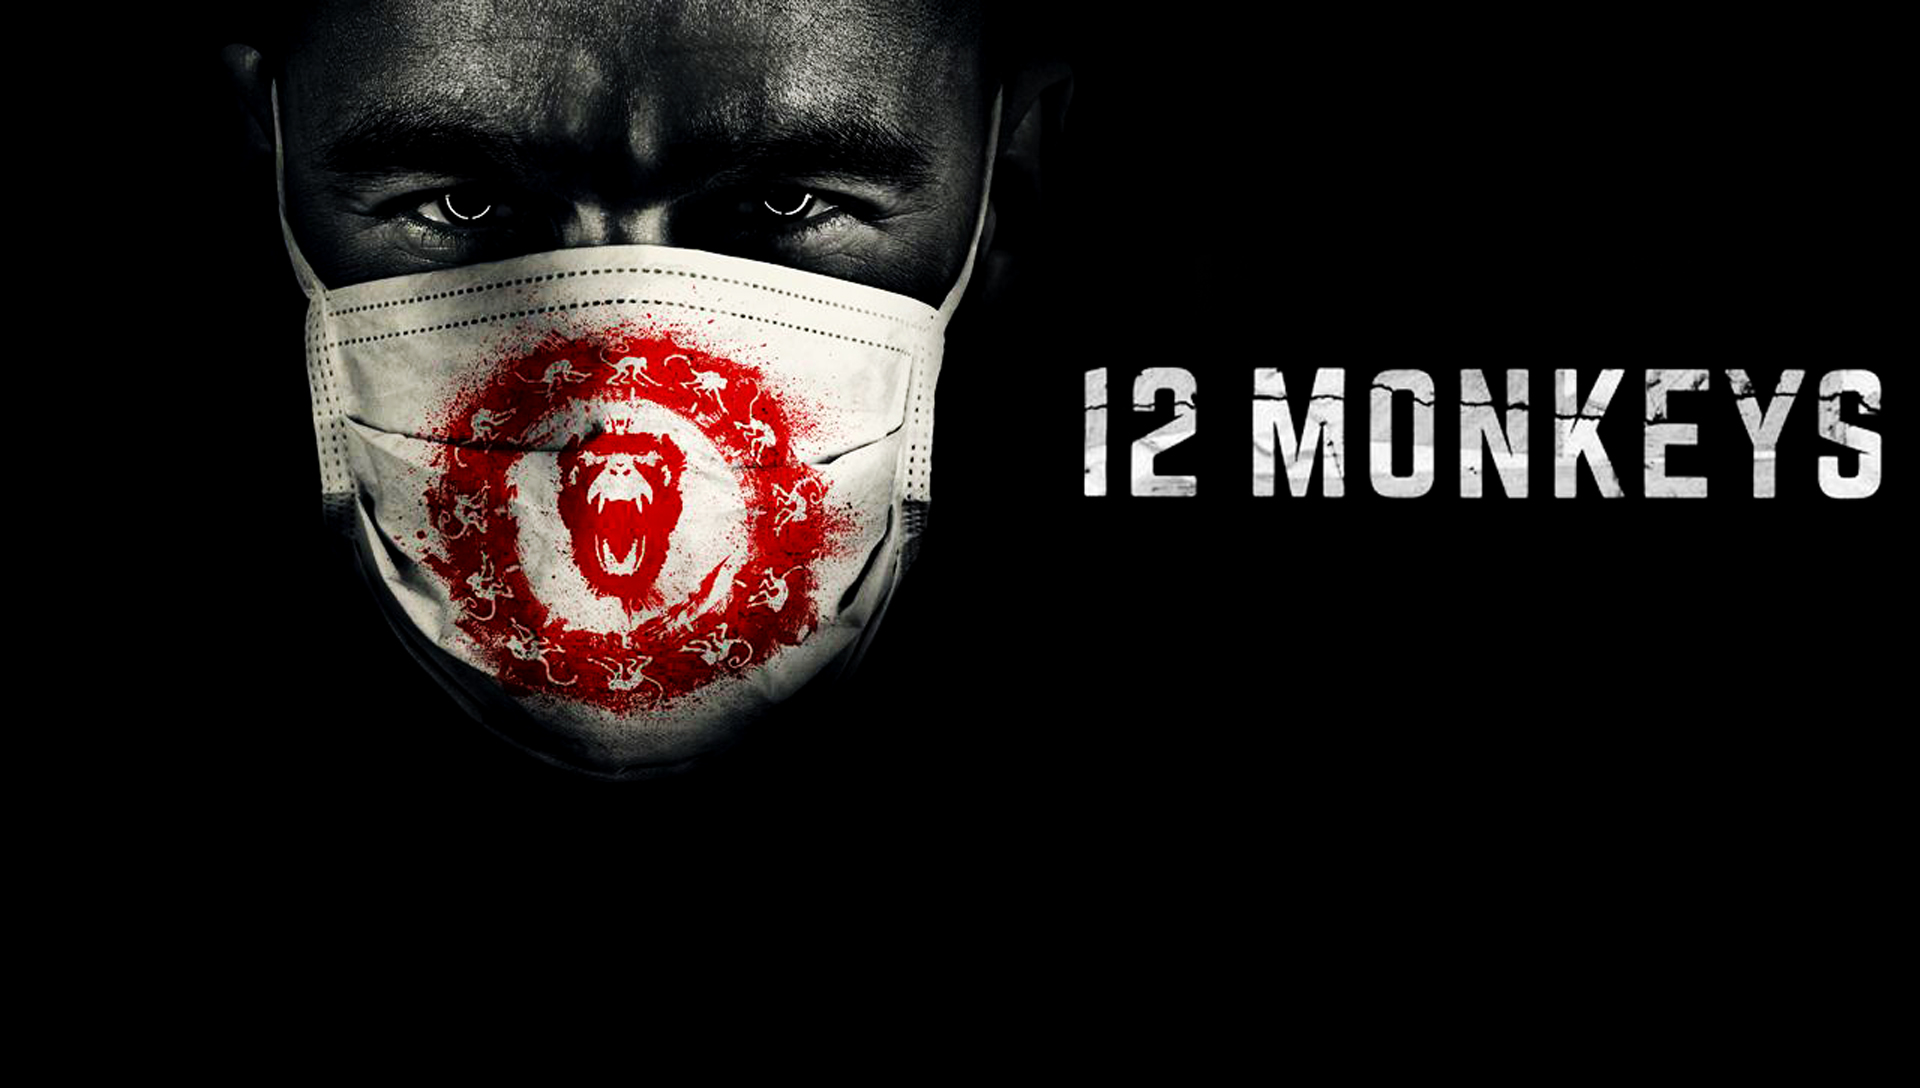 12 Monkeys HD Wallpapers